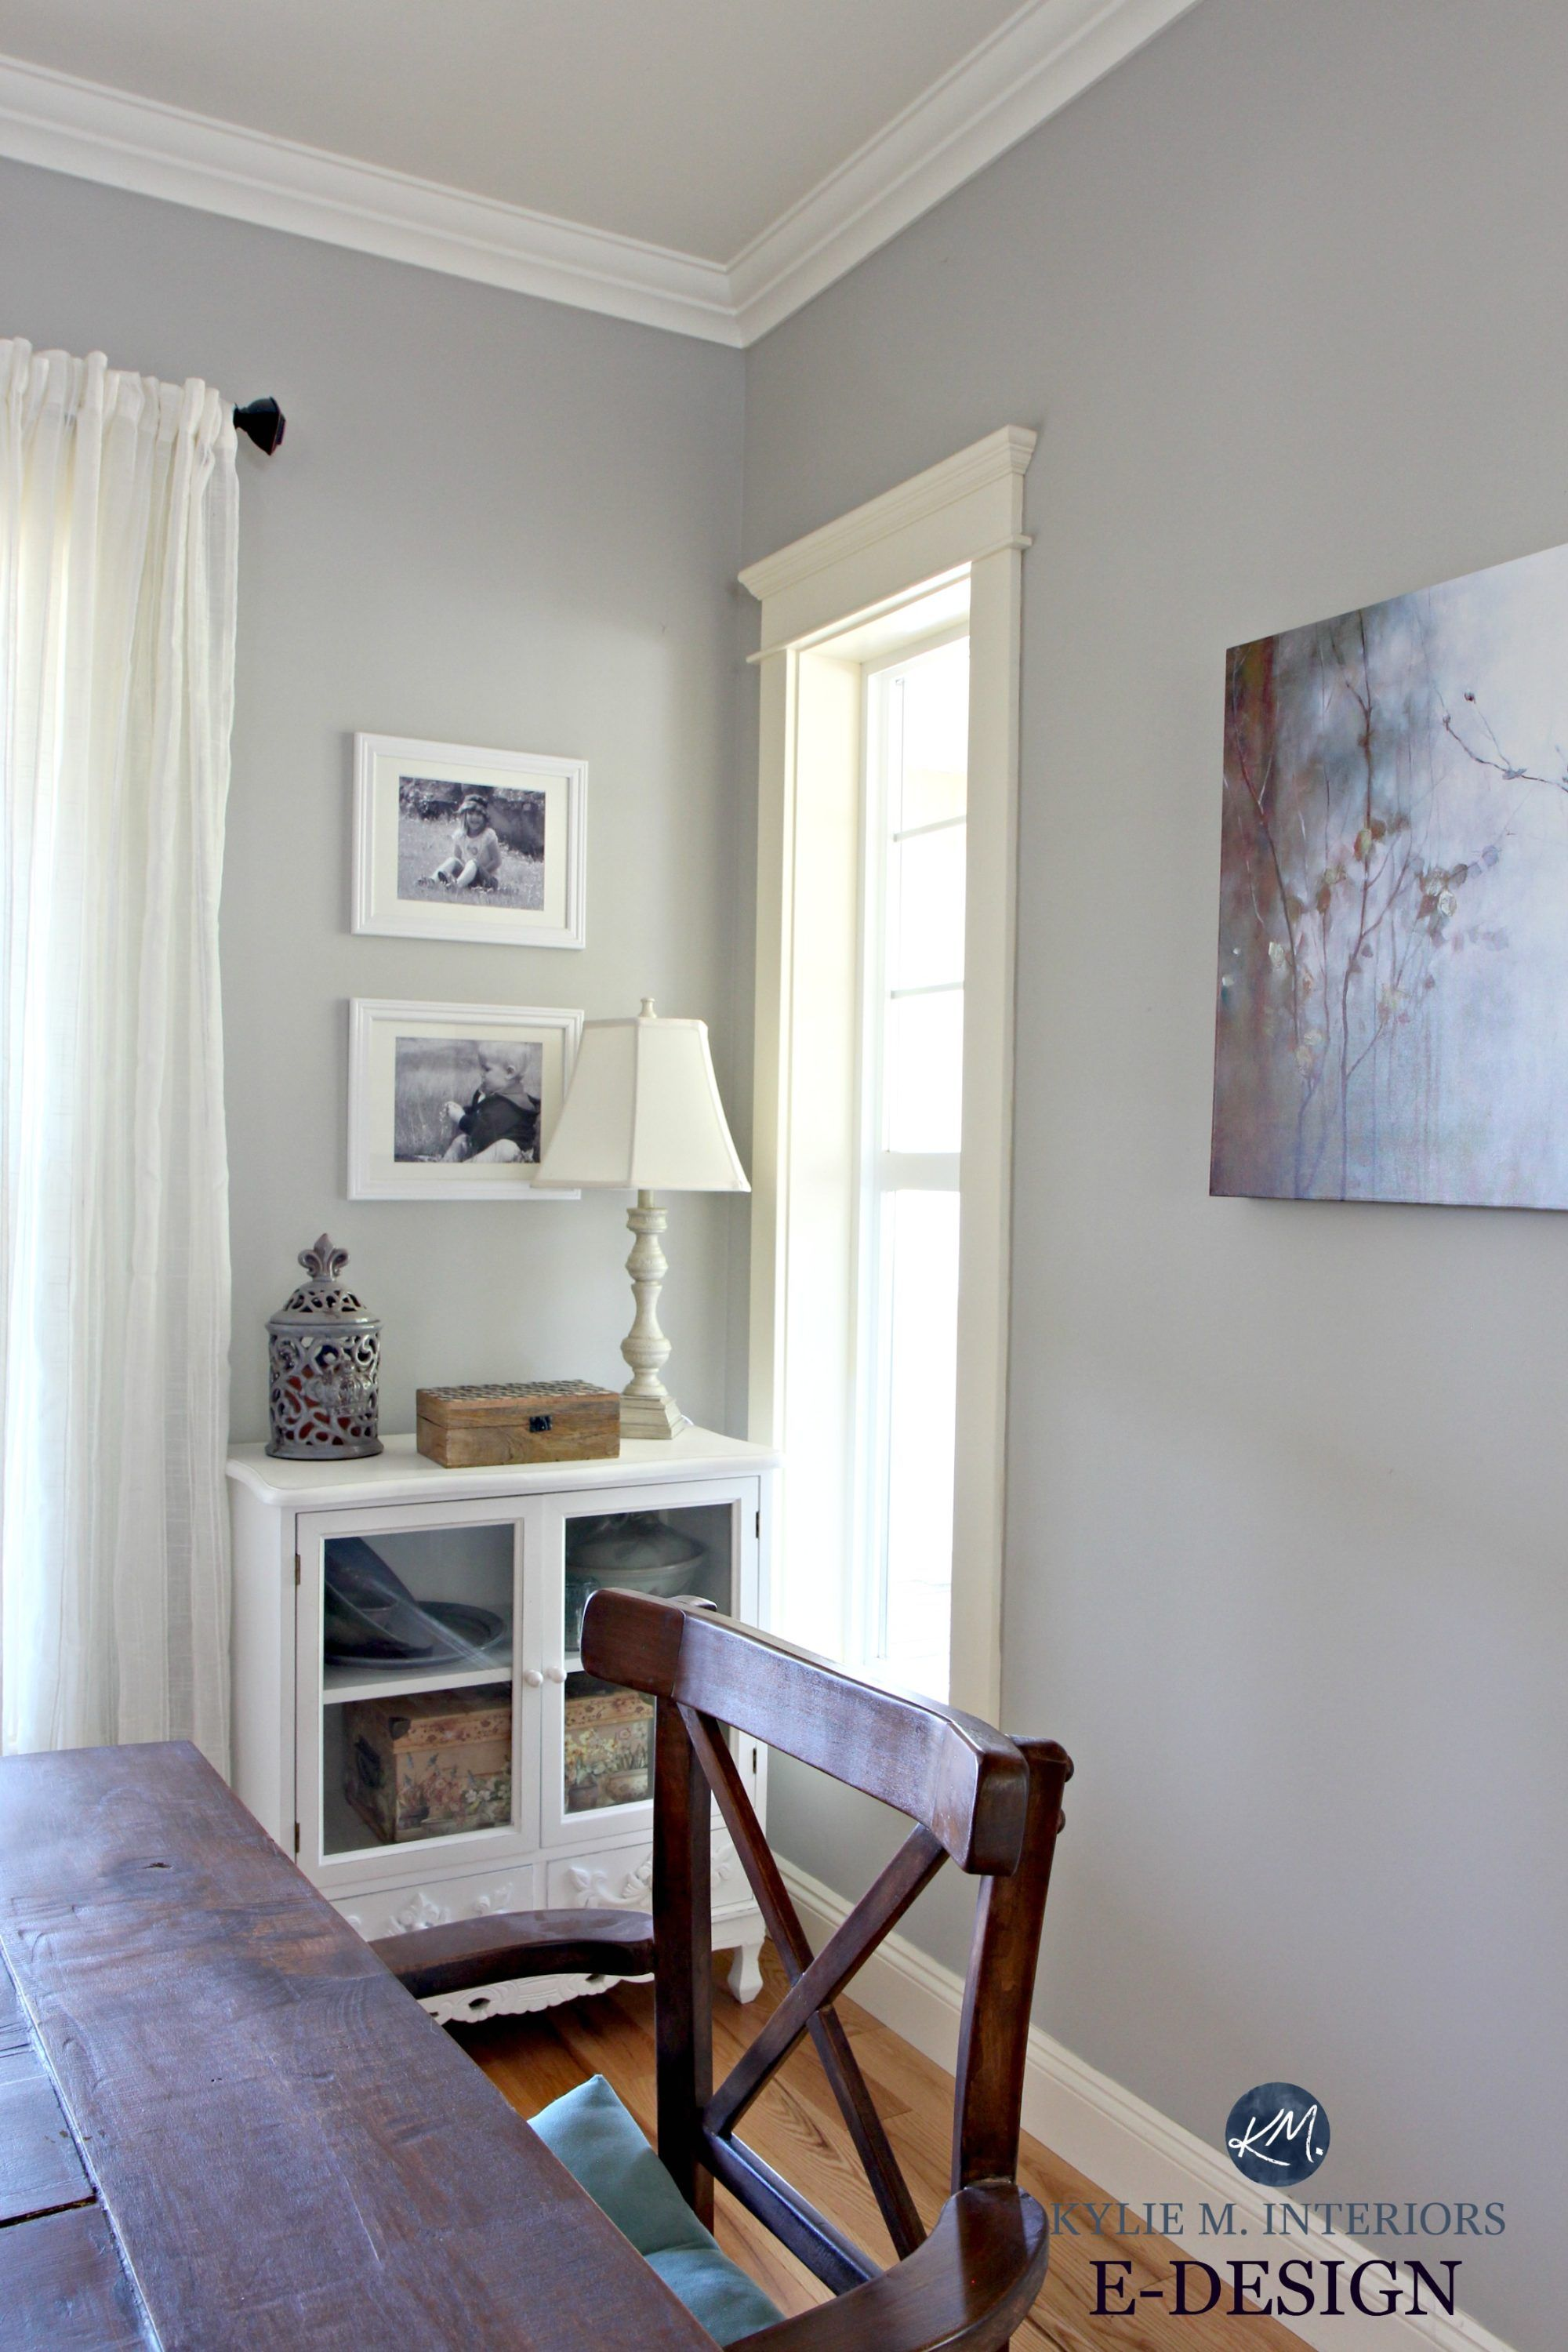 Dulux Most Popular Grey Paint Colours Bedroom Walls Painted In Dulux Goose Down Grey In 2020 Bedroom Paint Colors Grey Grey Bedroom Colors Popular Grey Paint Colors